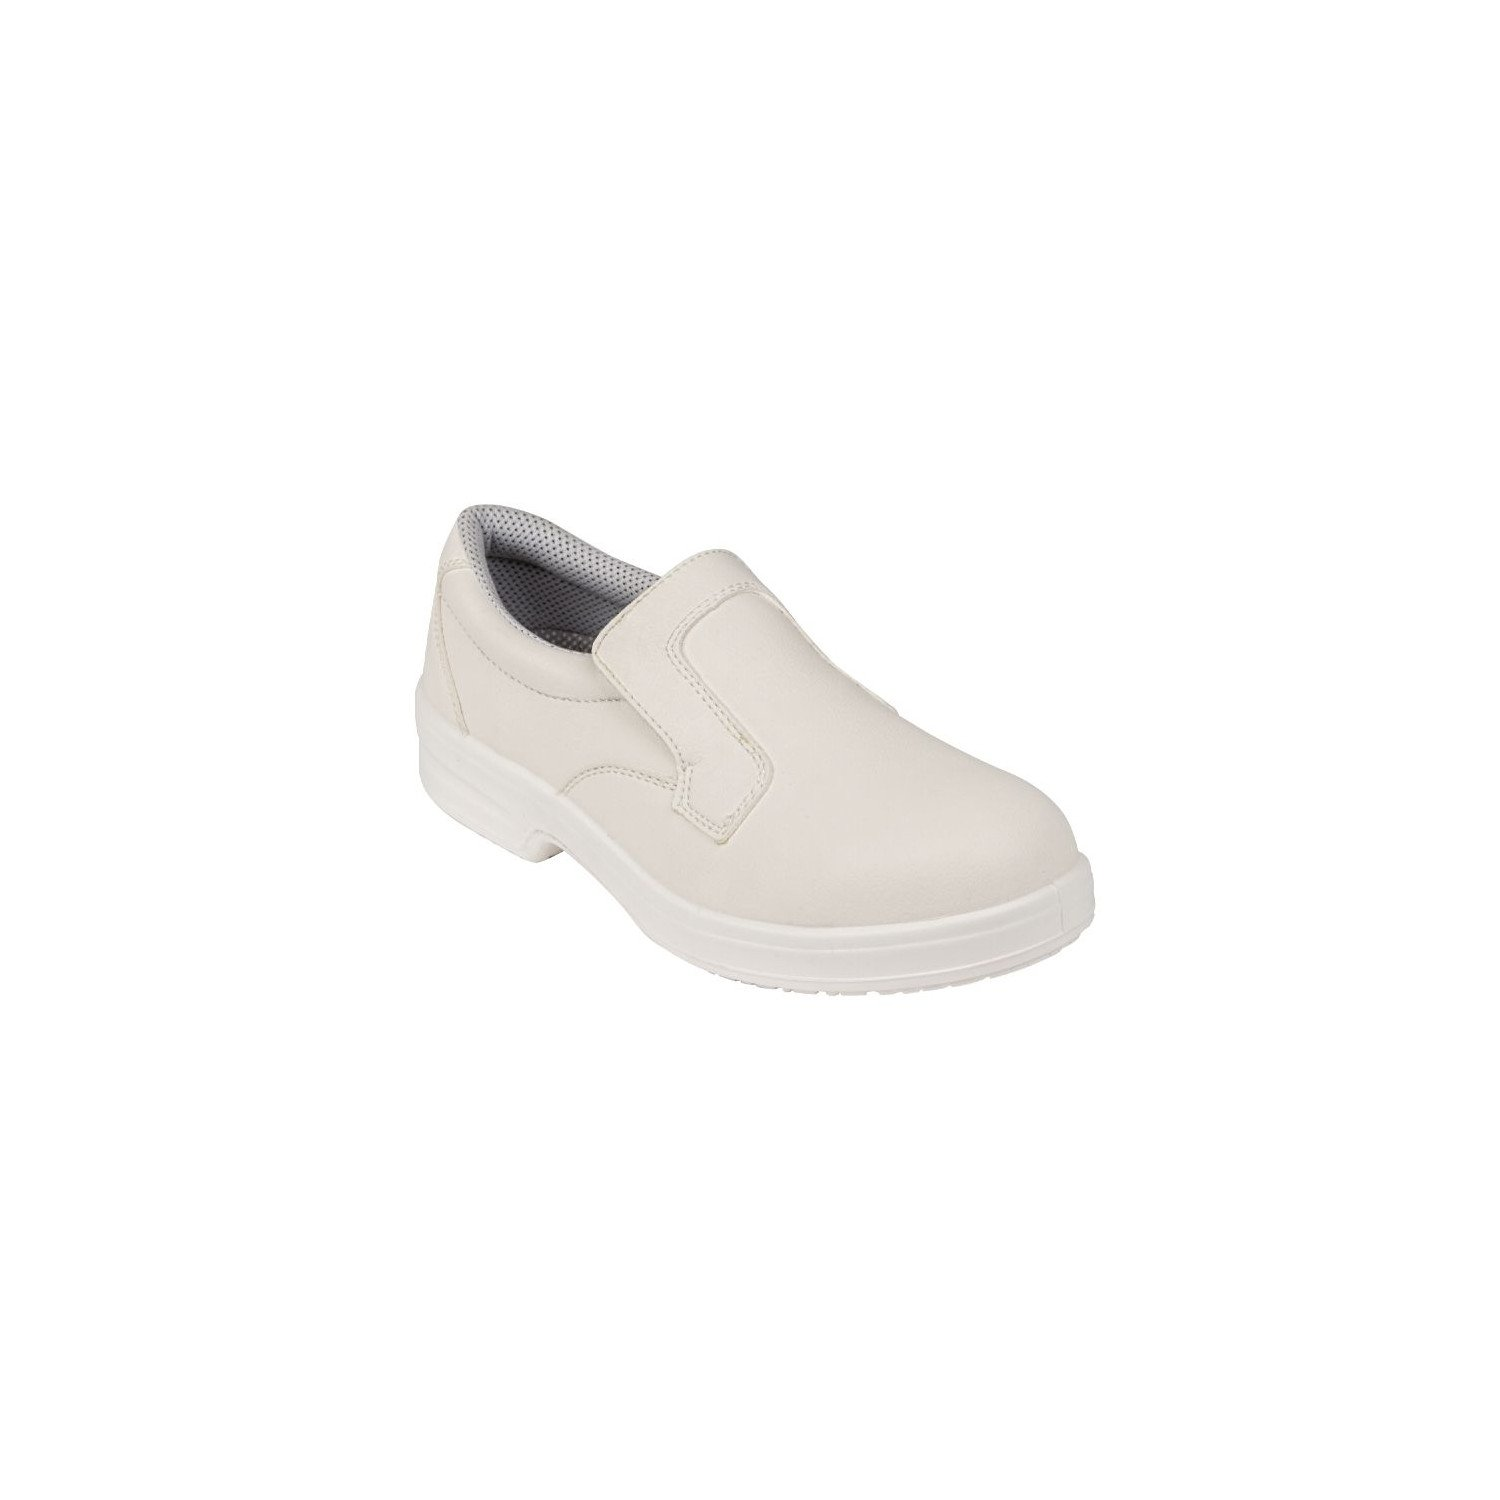 Mocassins imperméables/lavables blancs T.40 LITES SAFETY FOOTWEAR Nisbets Vêtements